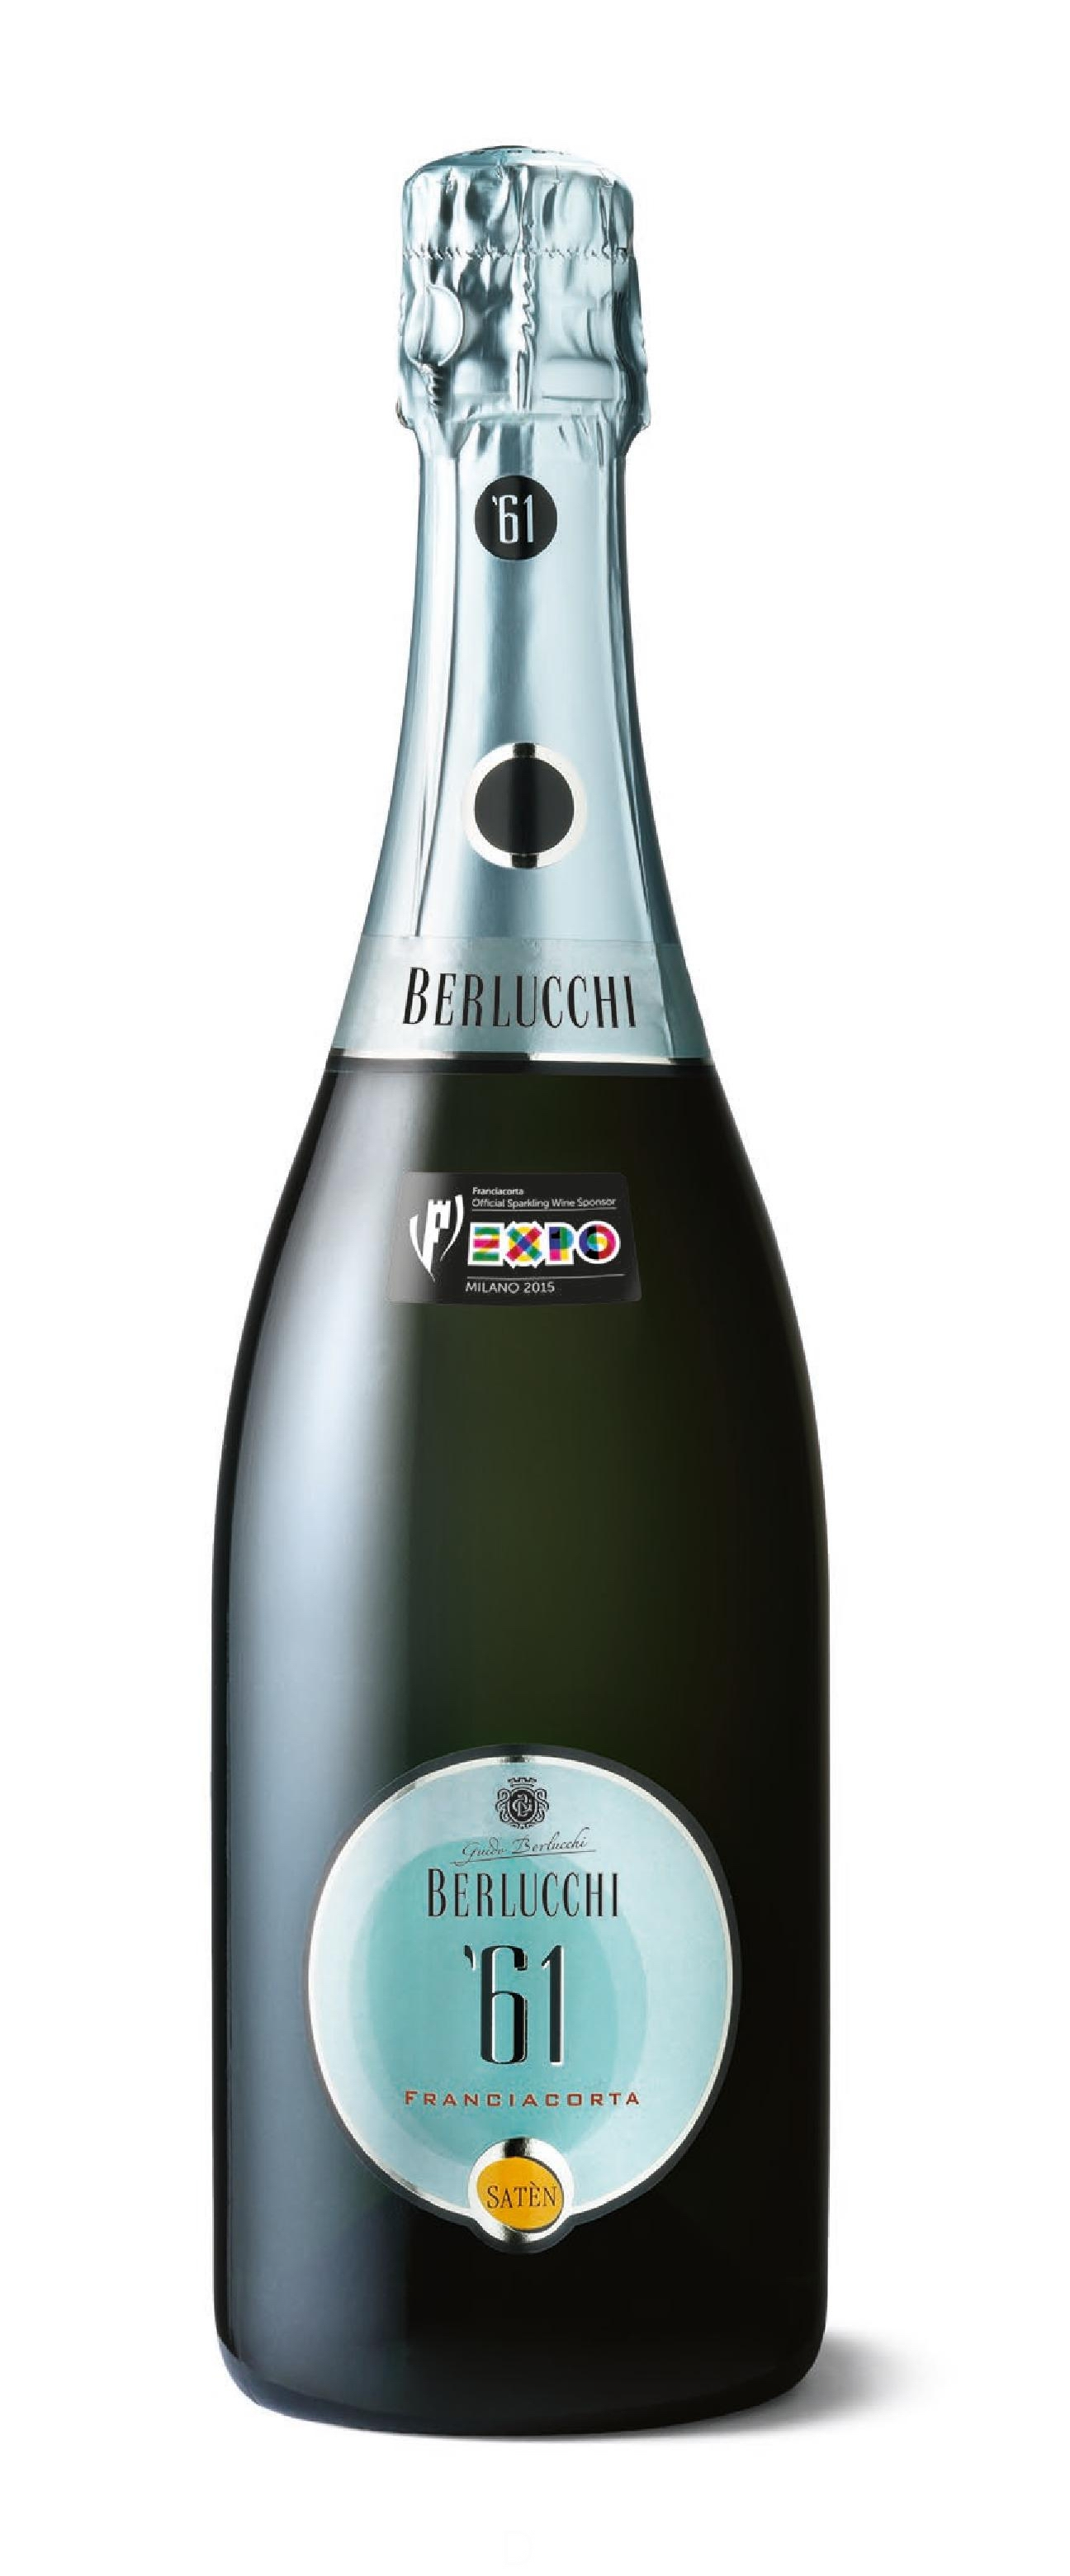 Sealed partnership between Expo and Franciacorta Berlucchi: This is an unrepeatable opportunity for promoting the Franciacorta area